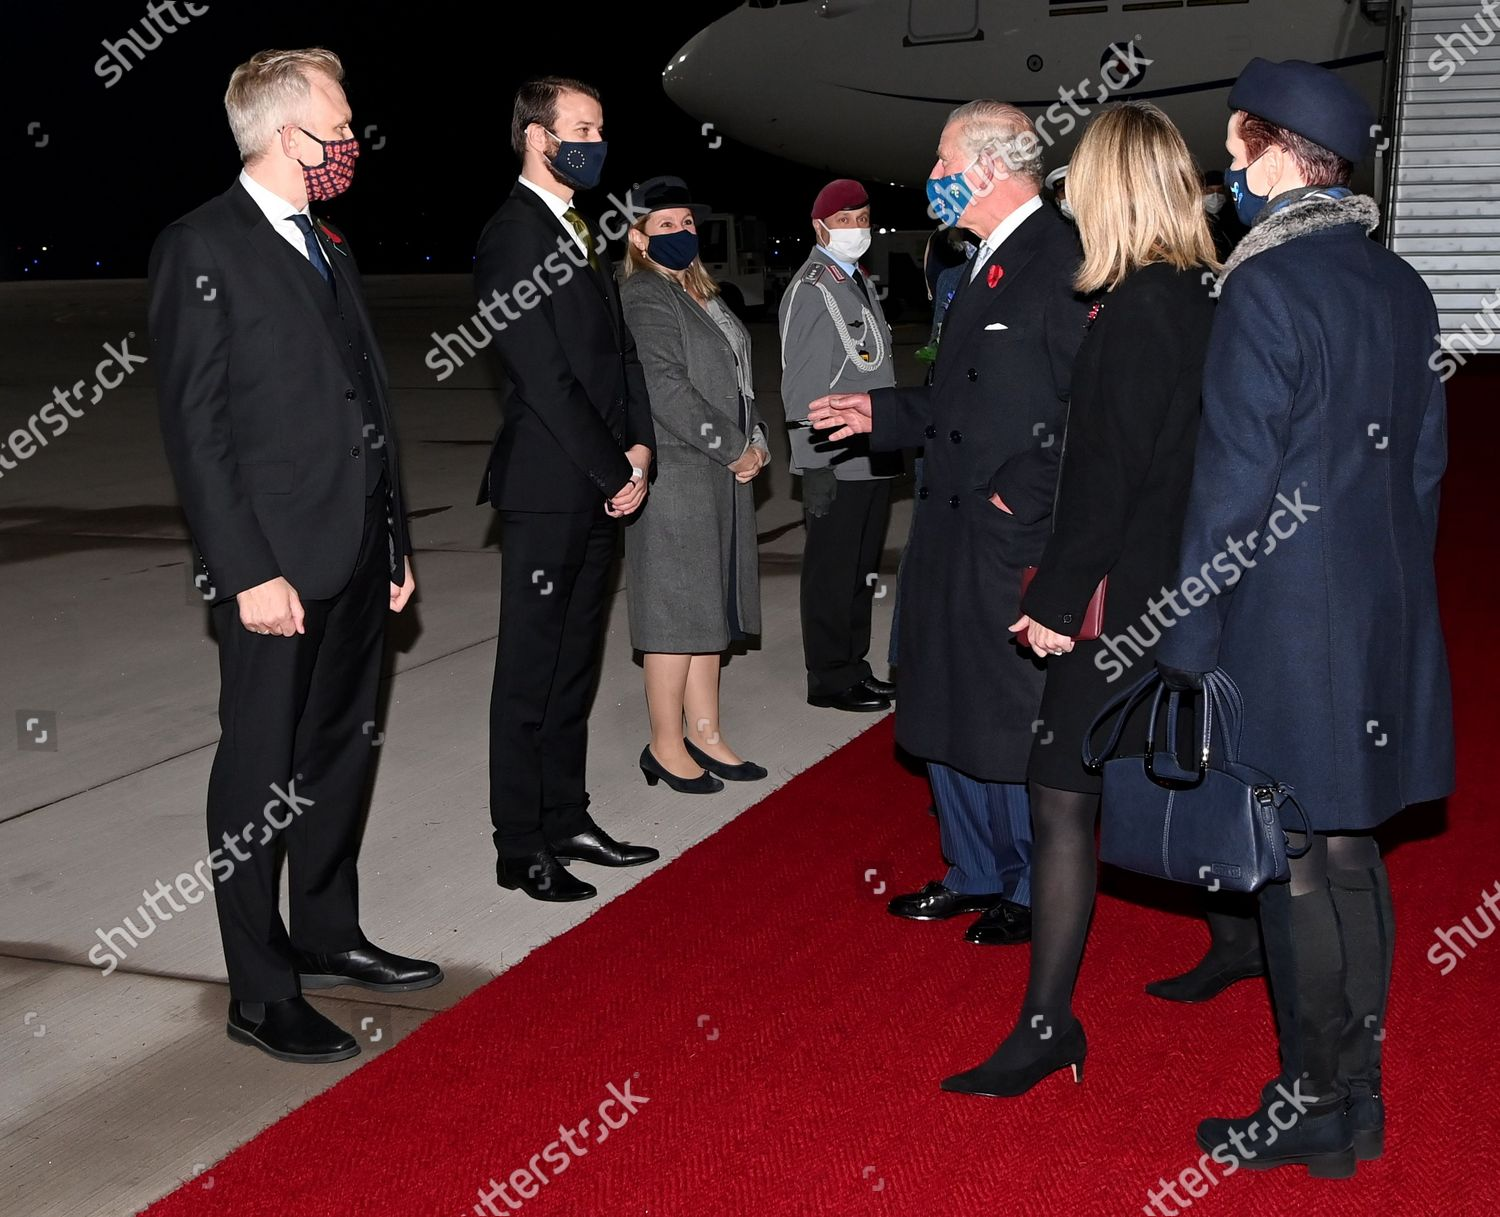 prince-charles-and-camilla-duchess-of-cornwall-visit-to-berlin-germany-shutterstock-editorial-11016152ad.jpg